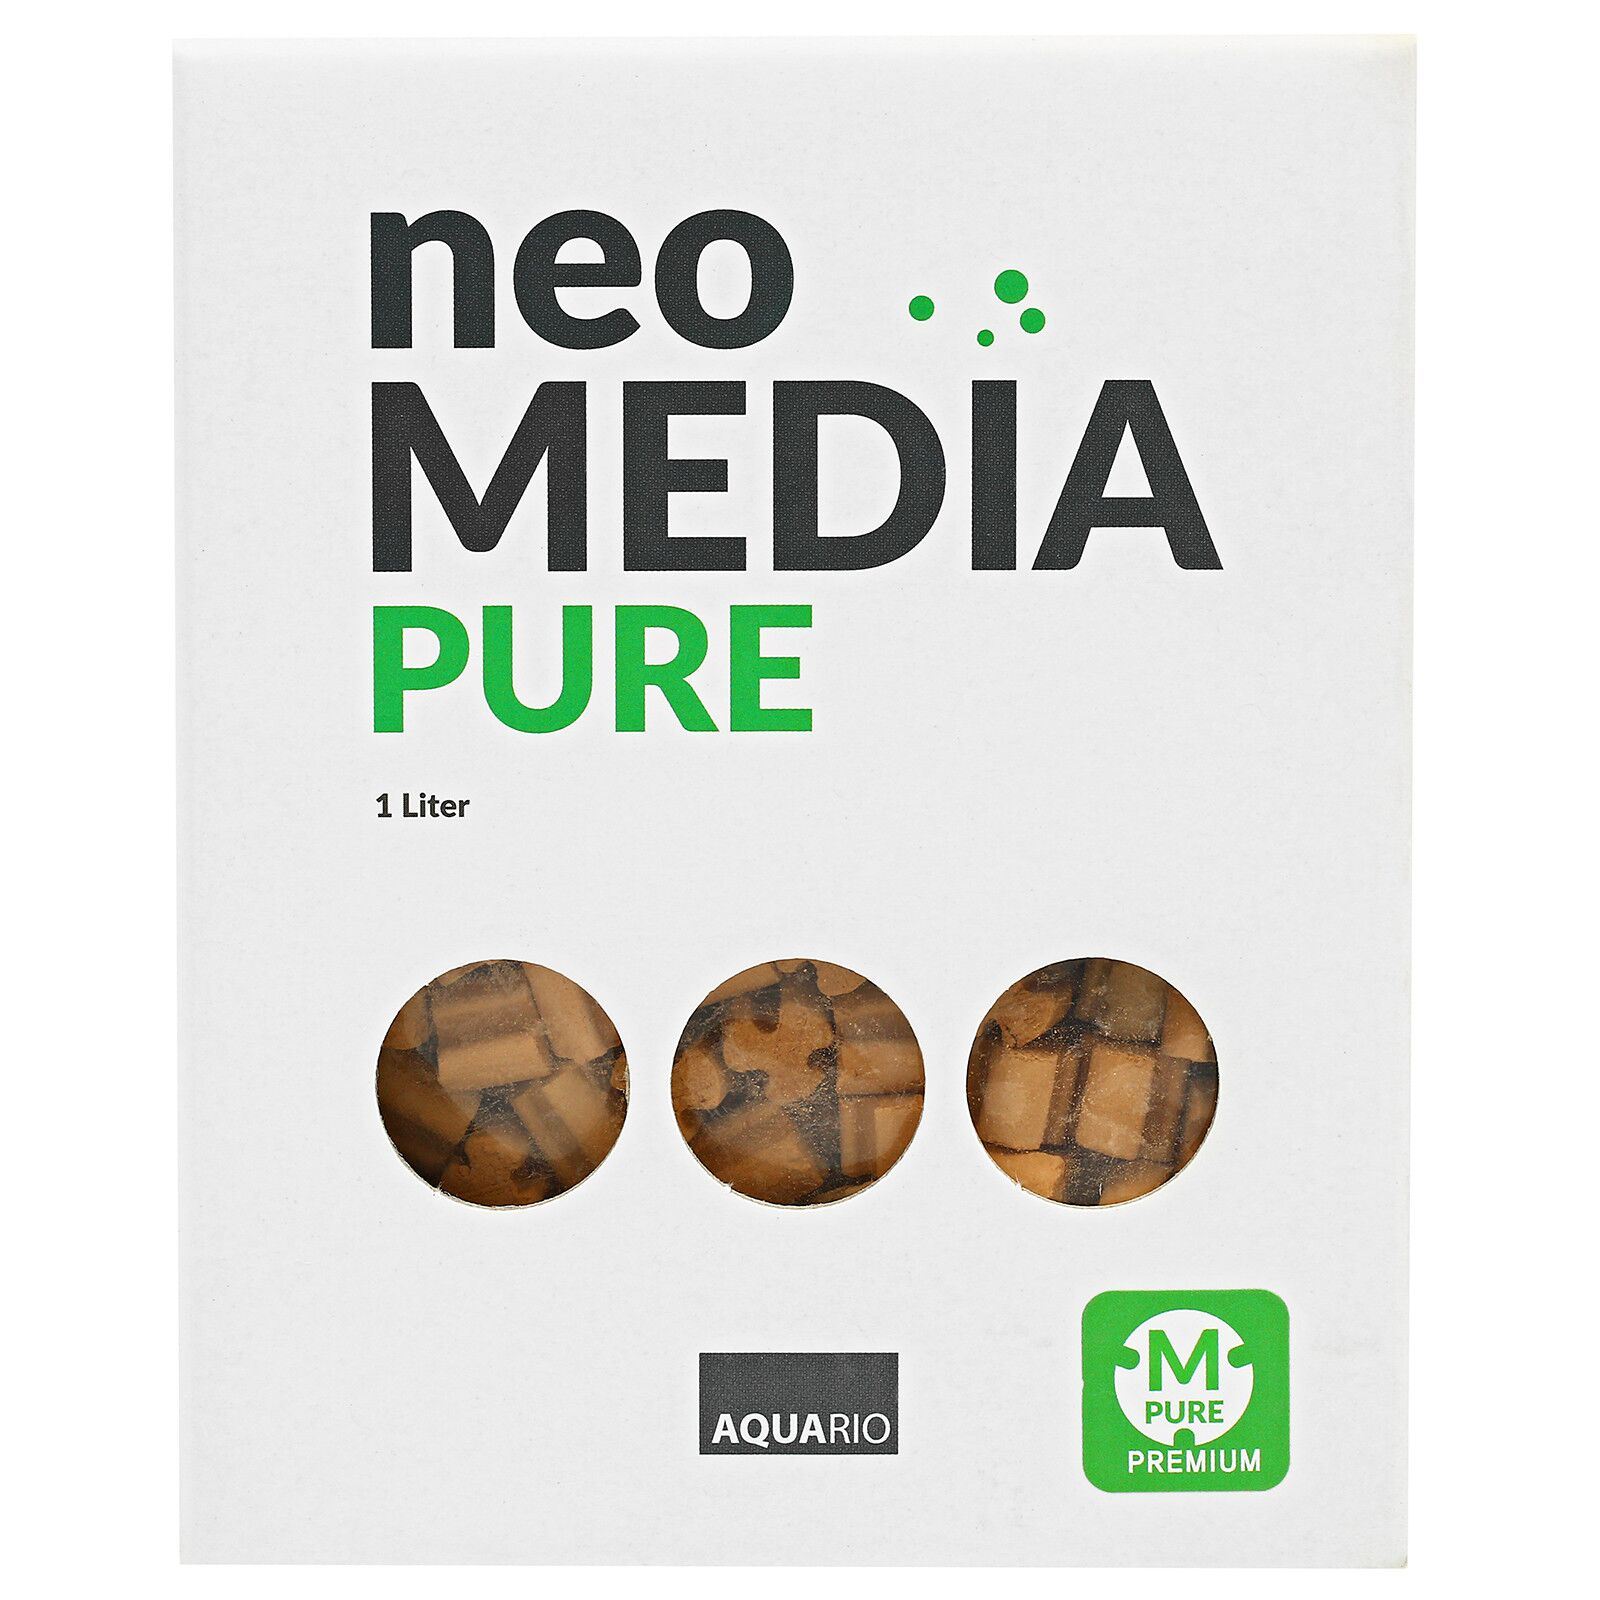 AQUARIO - Neo Media - Premium - M - Pure